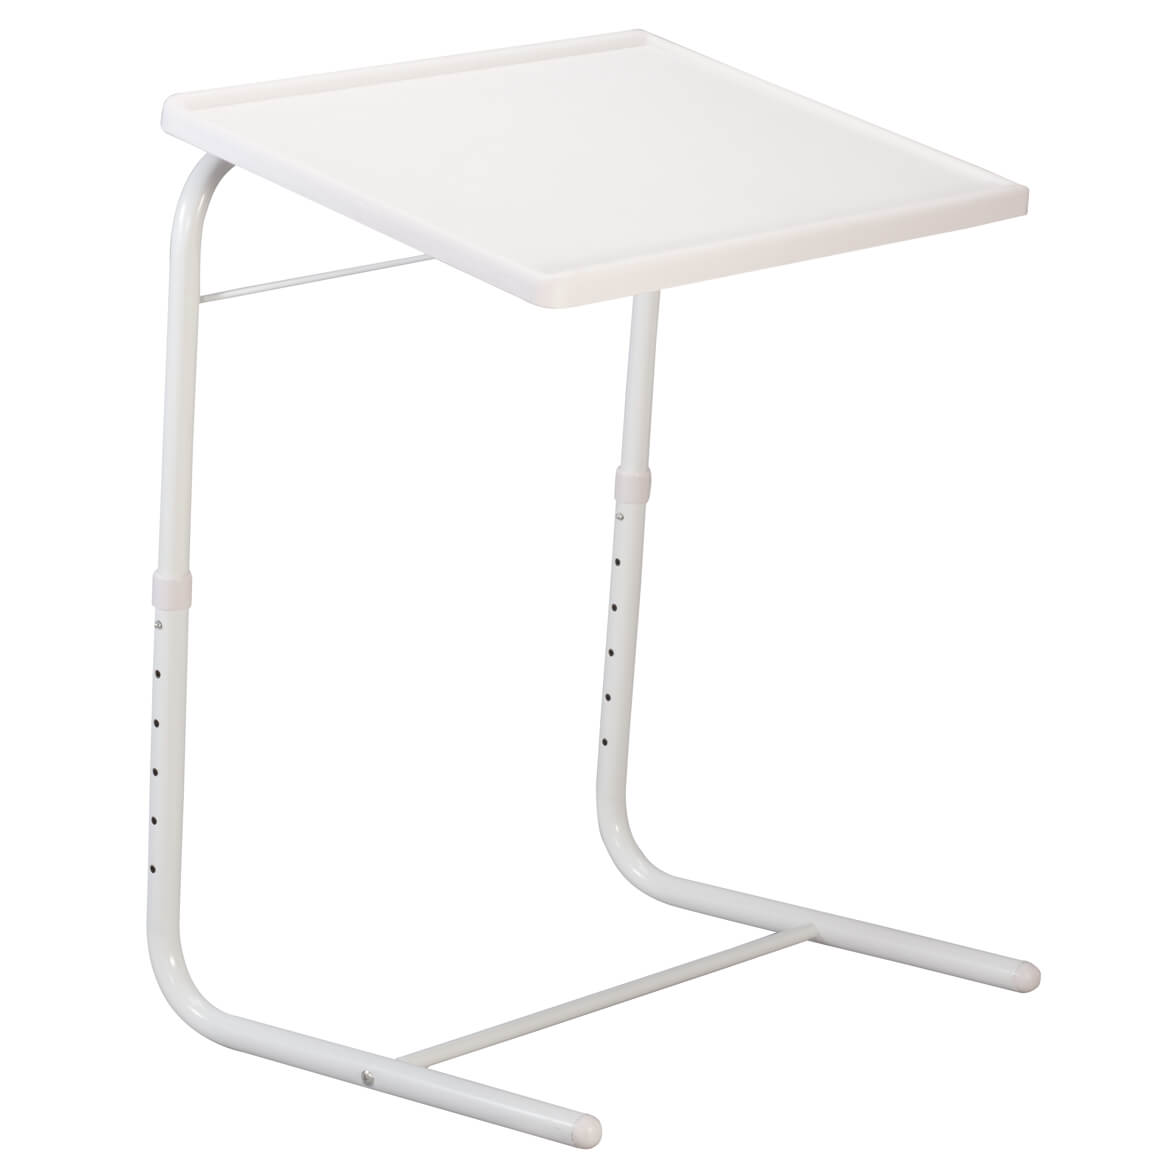 EasyComforts Adjustable Tray Table   White